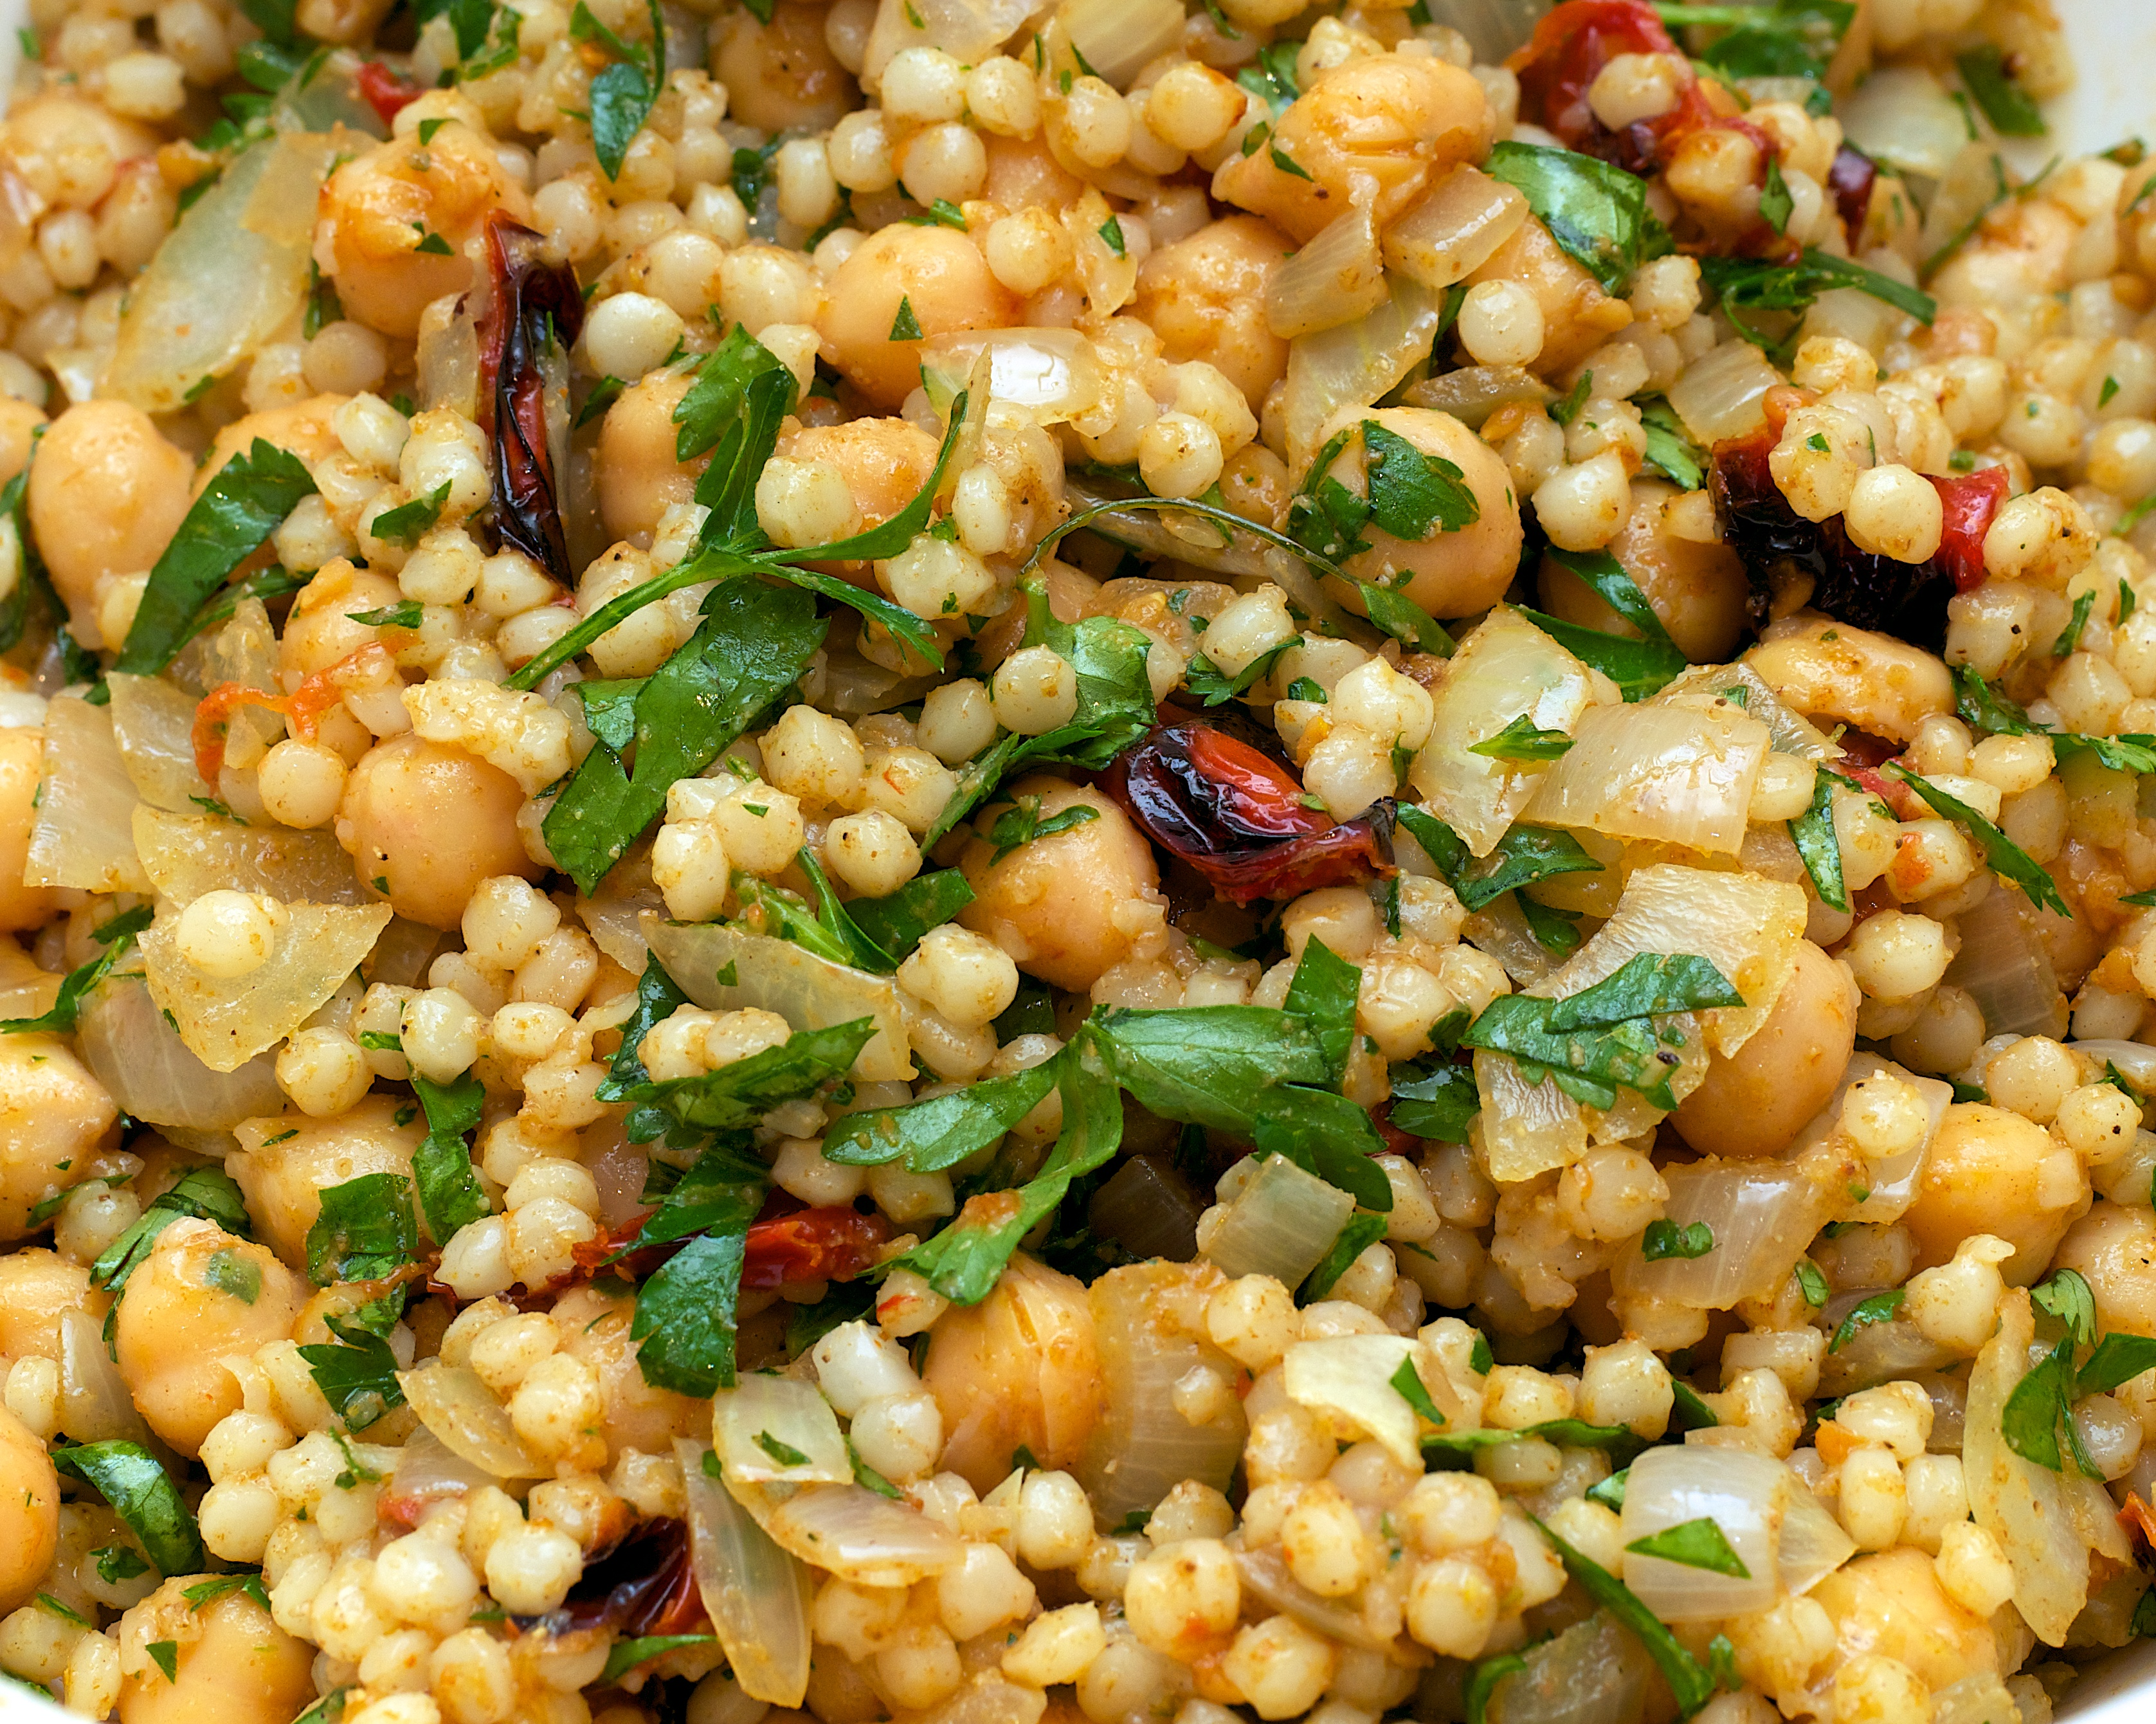 Watch Spiced Couscous and Chickpea Salad Recipe video